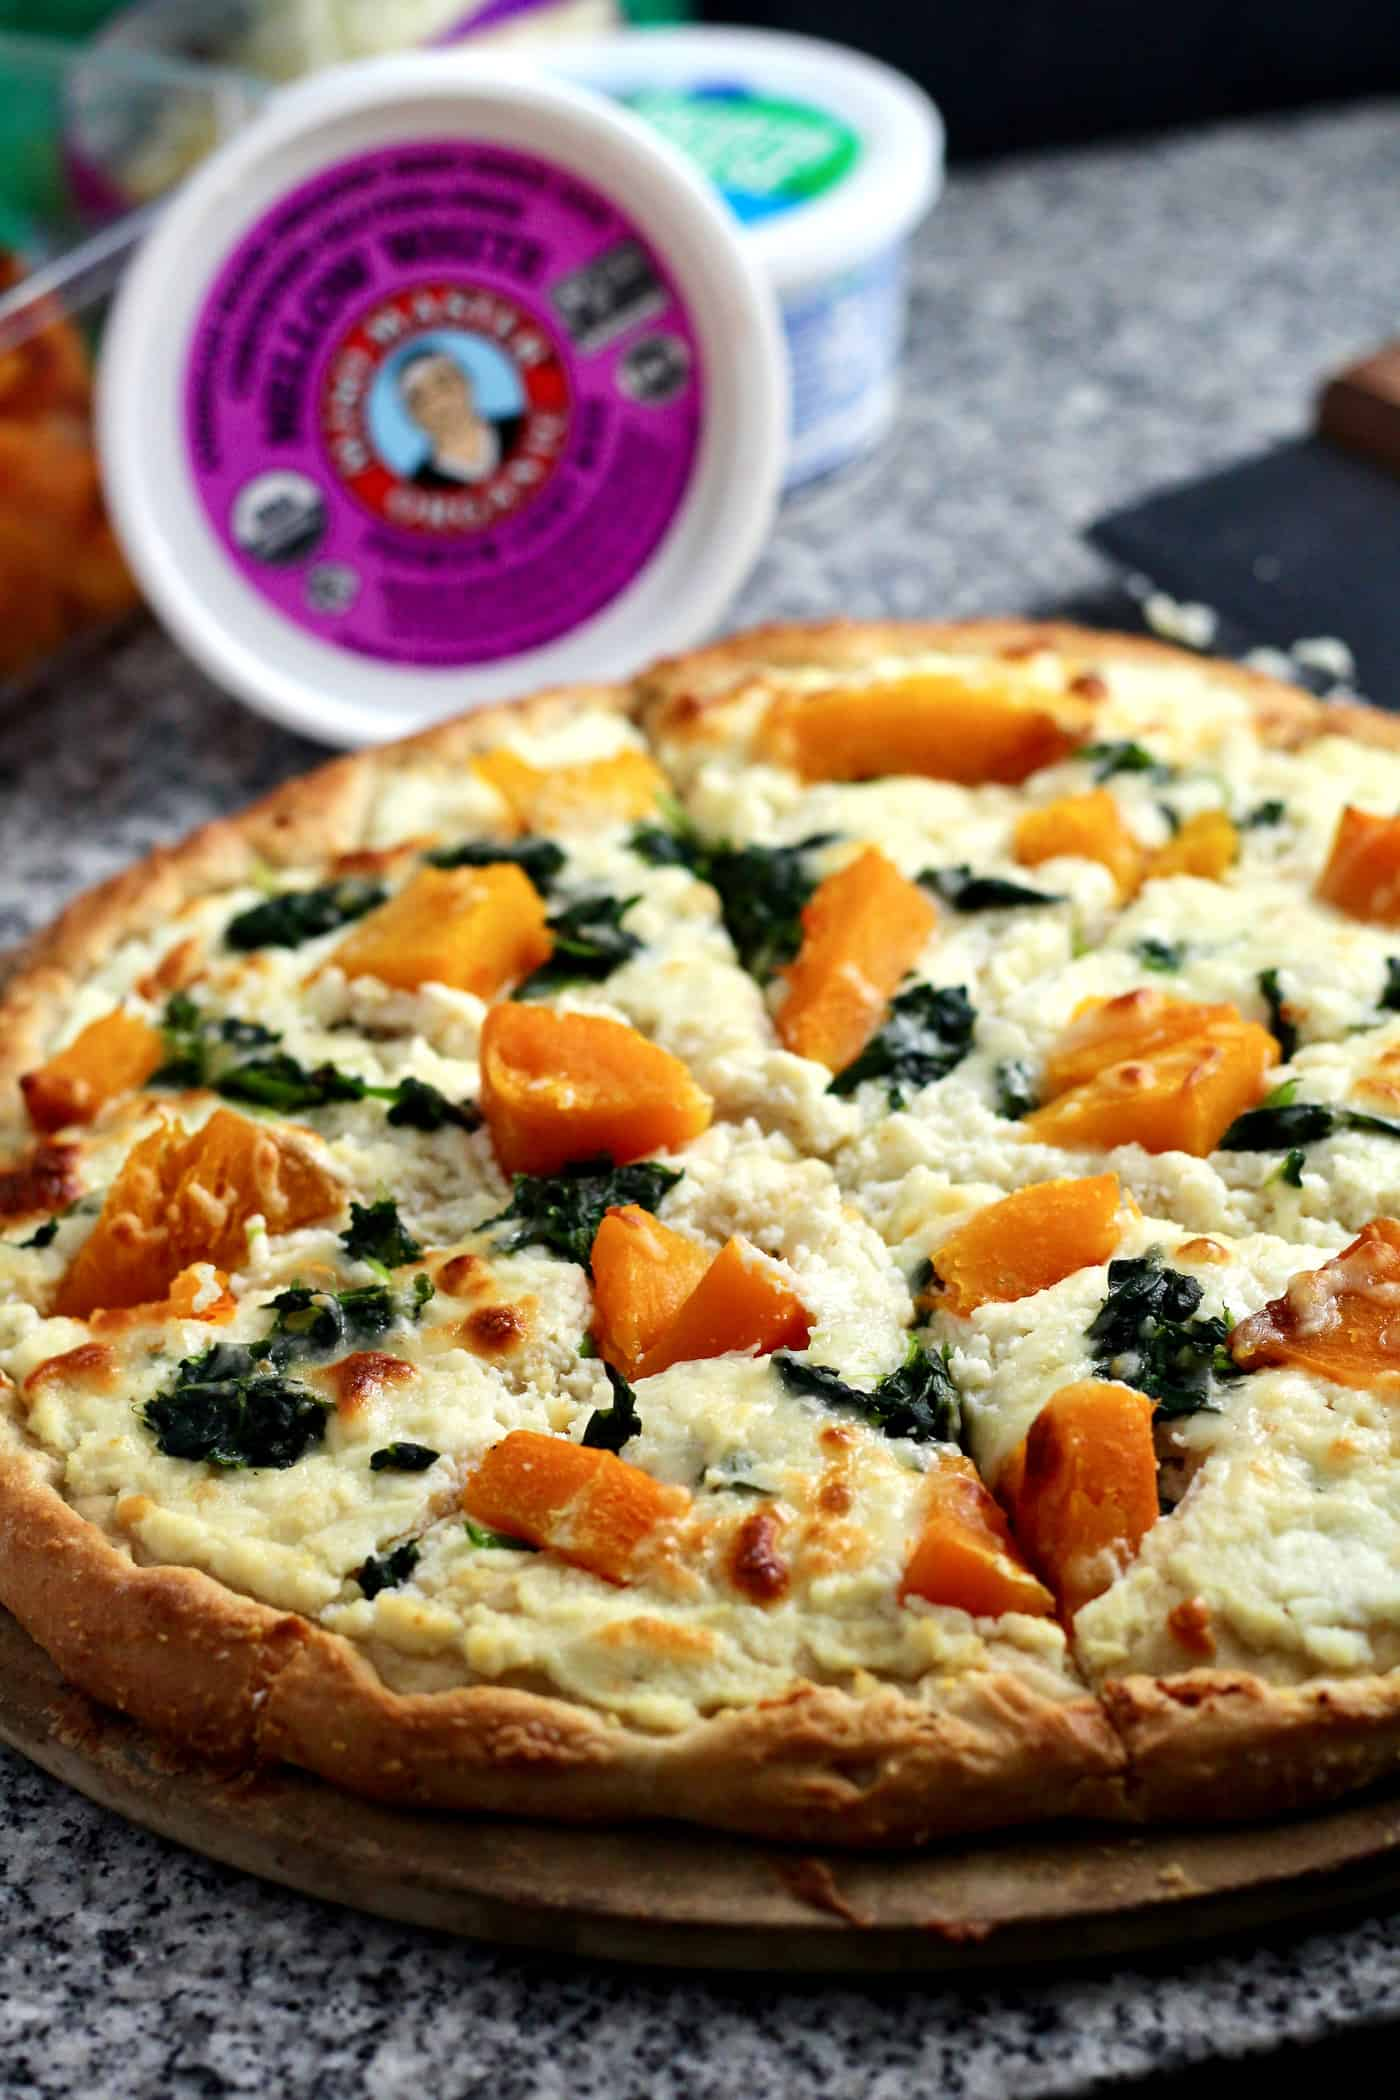 Miso-Ricotta Pizza with Roasted Butternut Squash